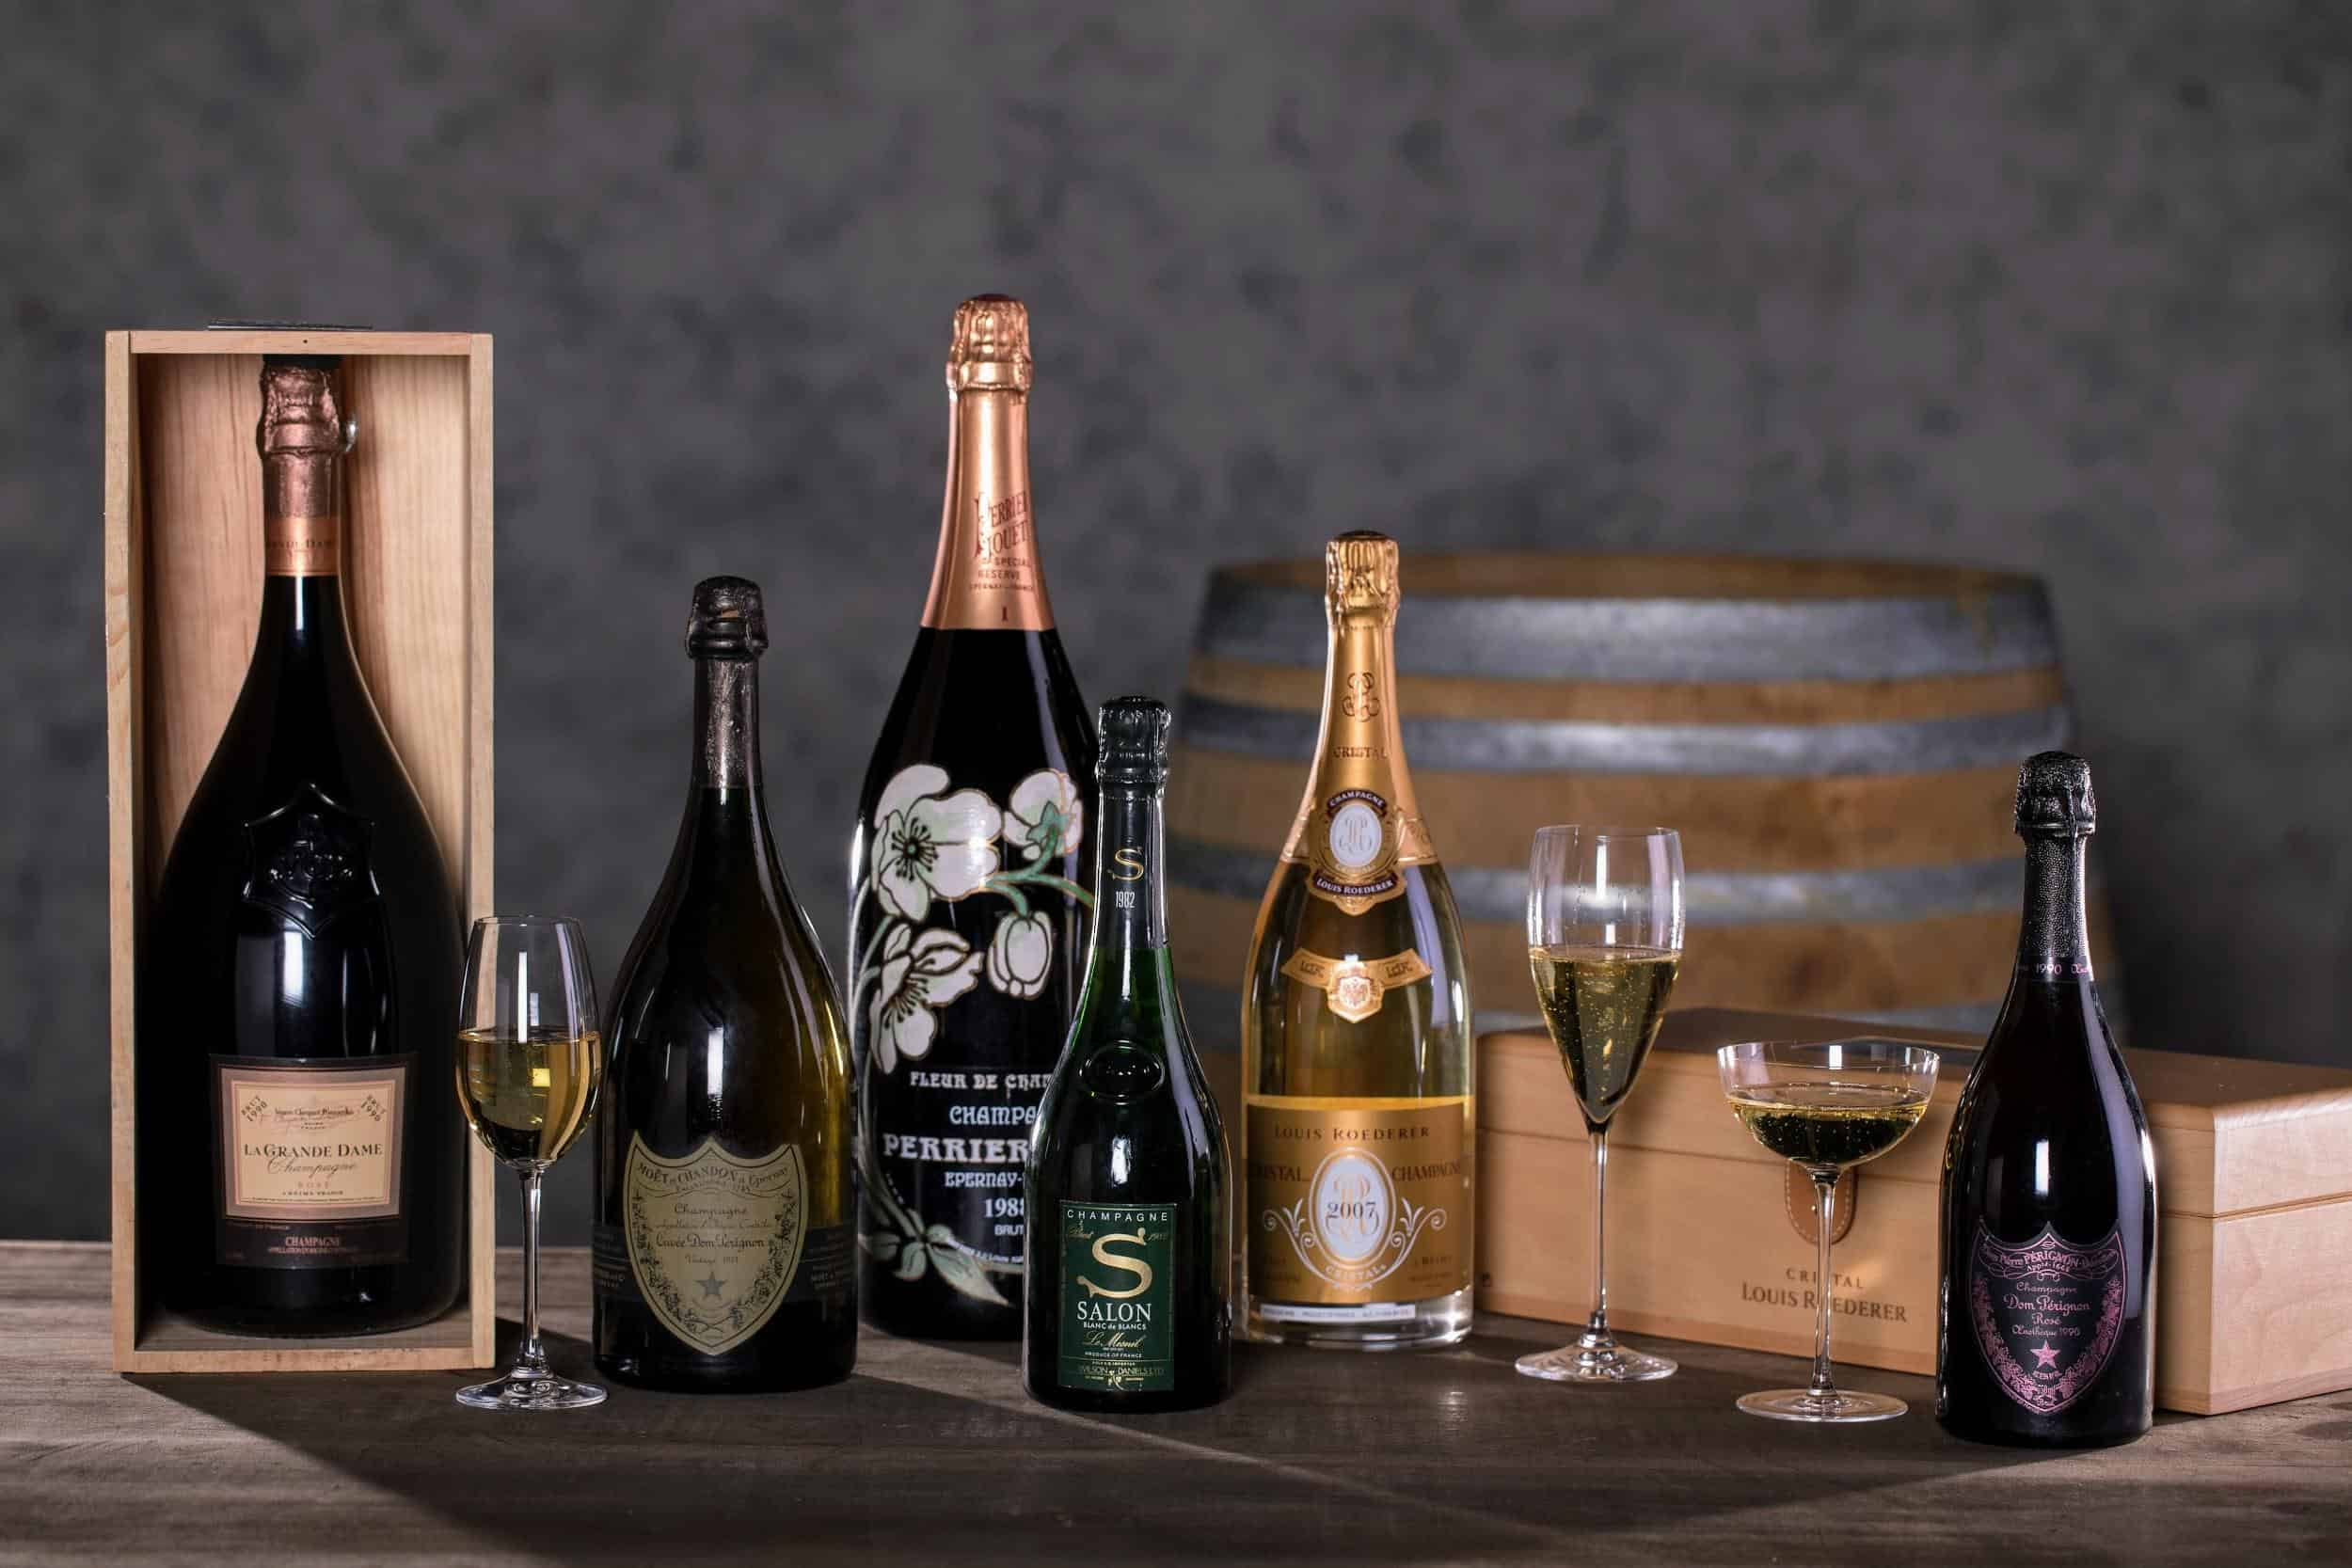 Sell Champagne online to easily make a profit on your investment